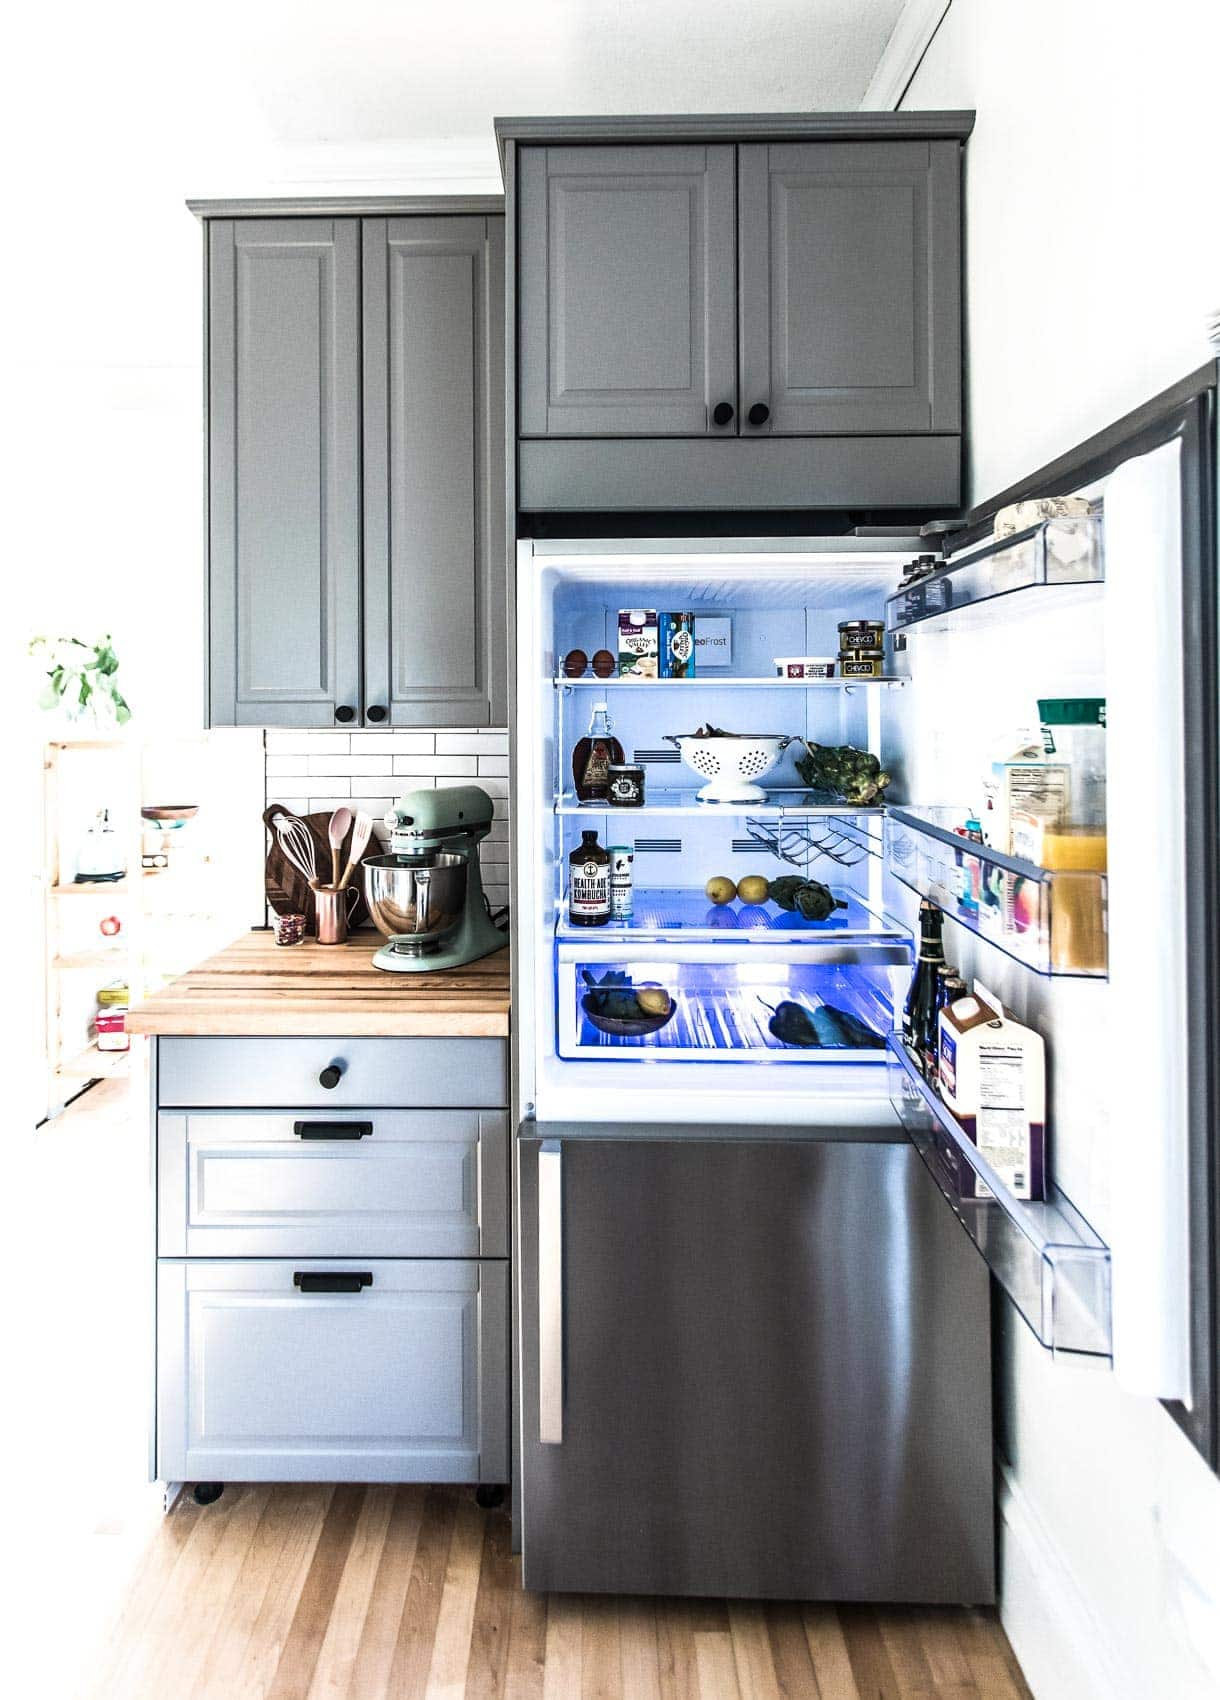 Beko Refrigerator in Kitchen Remodel